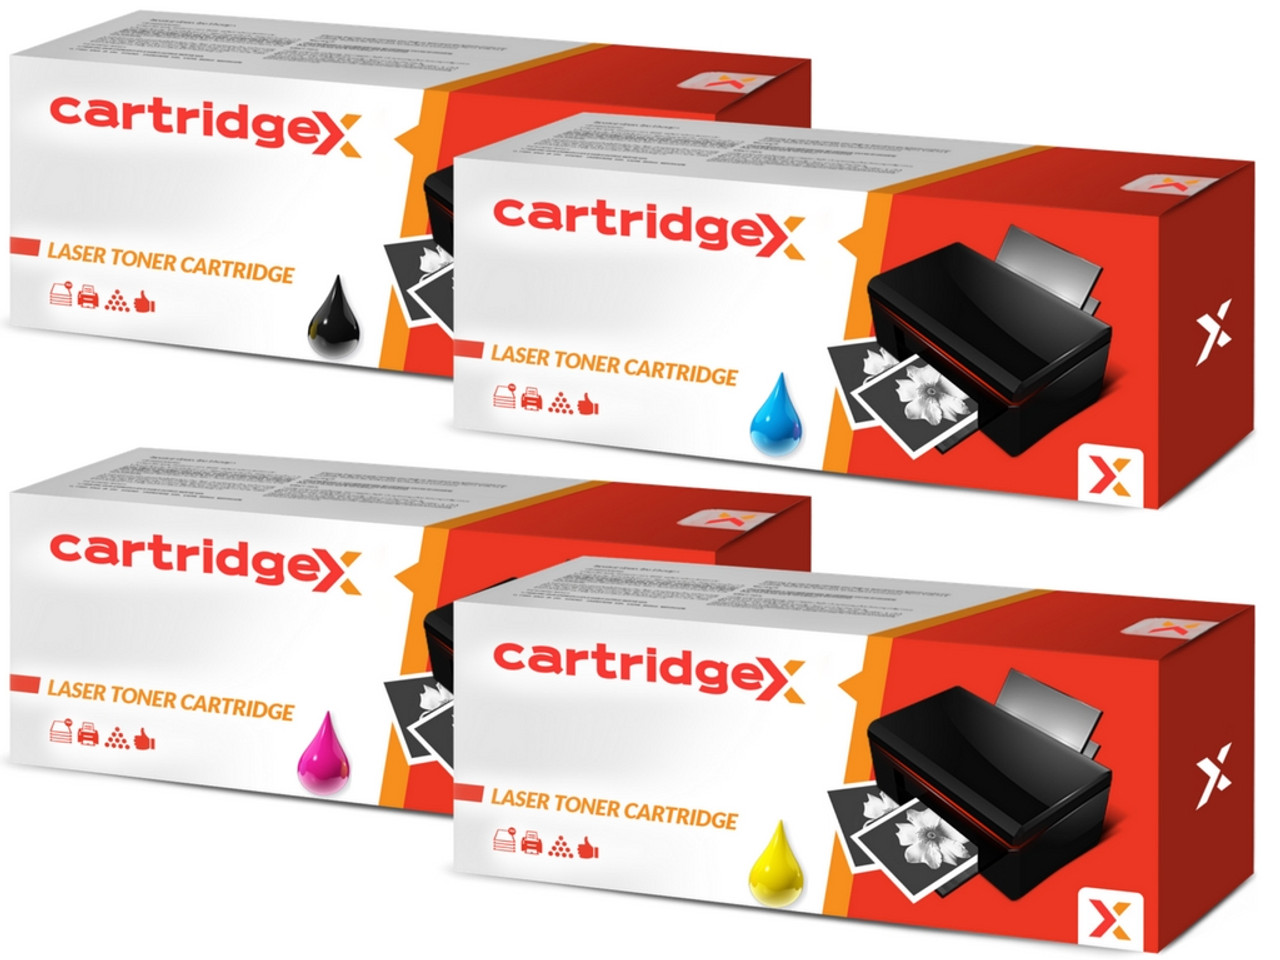 4 Compatible Canon C-EXV28 Toner Cartridge Multipack To Replace 2789/2793/2797/2801B002AA